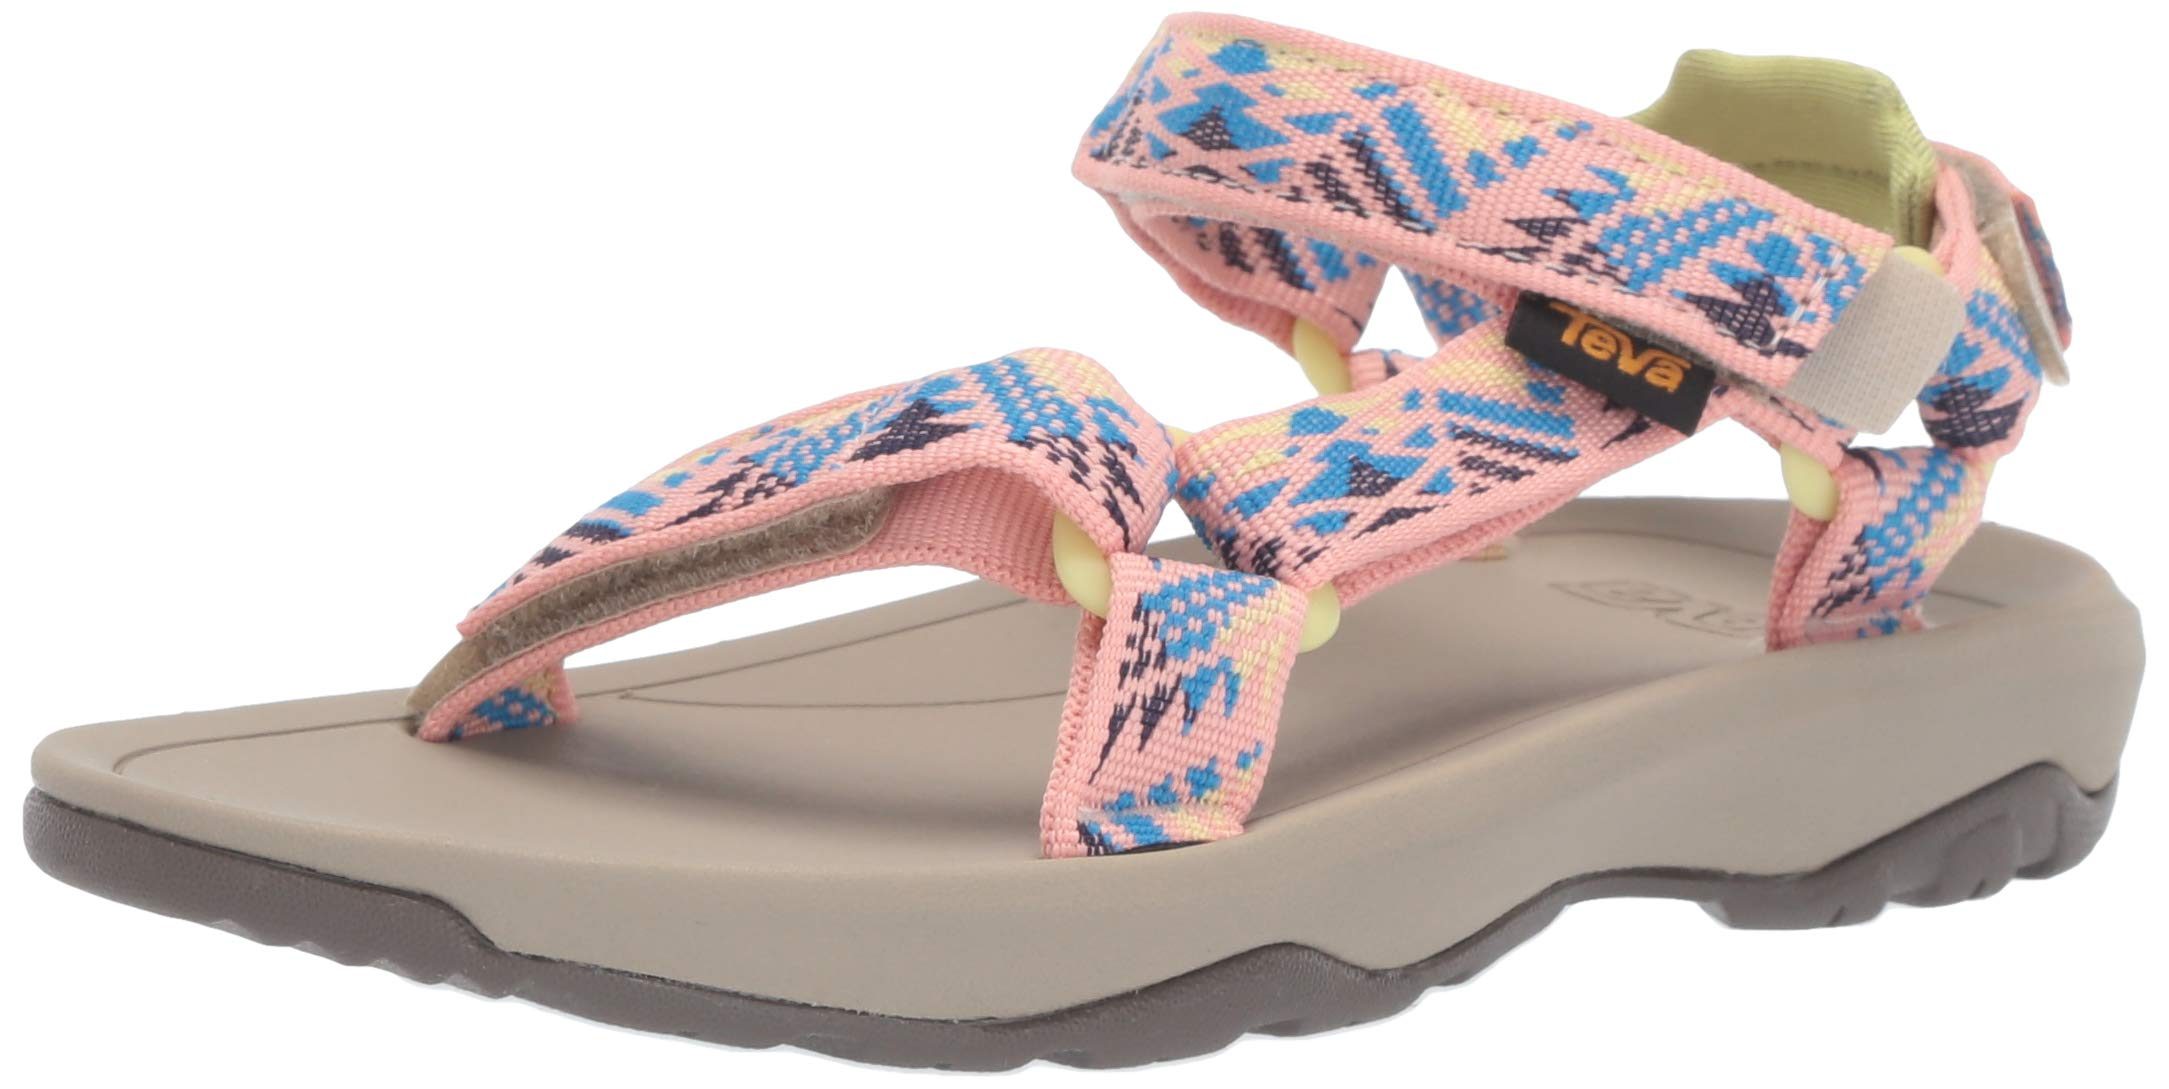 7f5781b16690 Best Rated in Girls' Sandals & Helpful Customer Reviews - Amazon.com